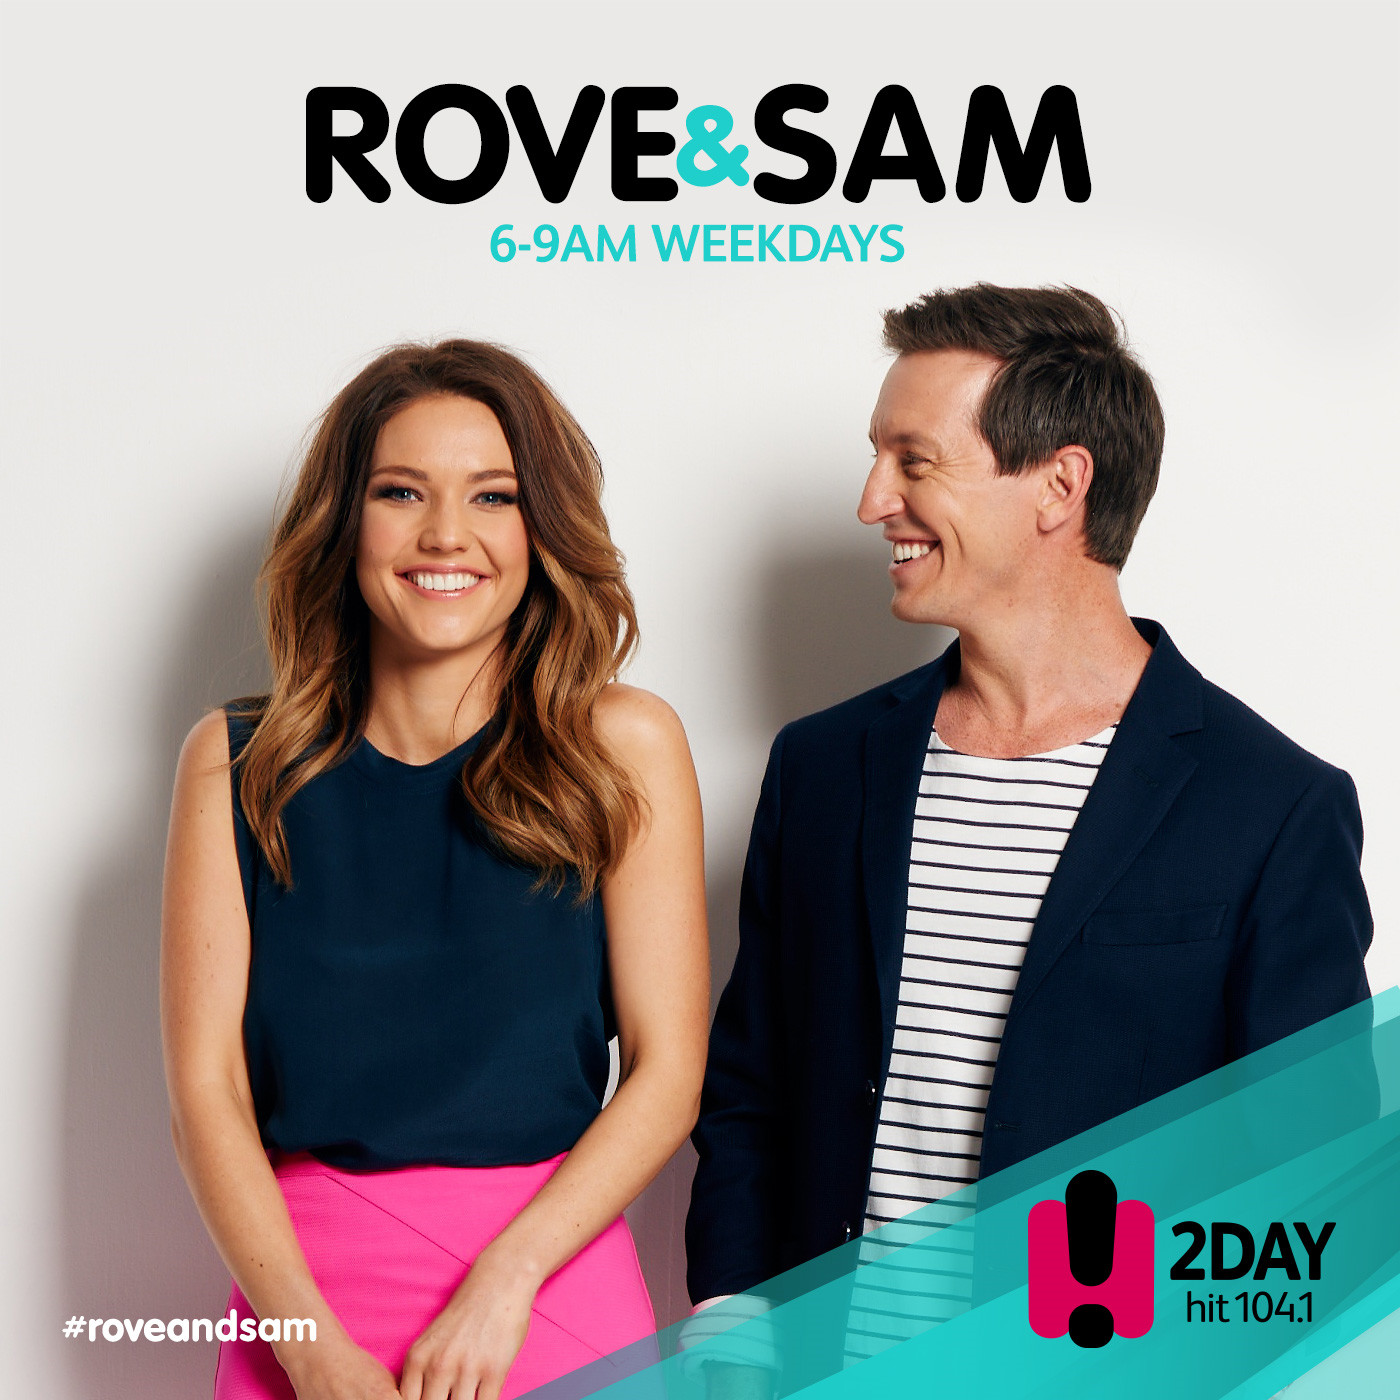 Rove and Sam: The Interviews